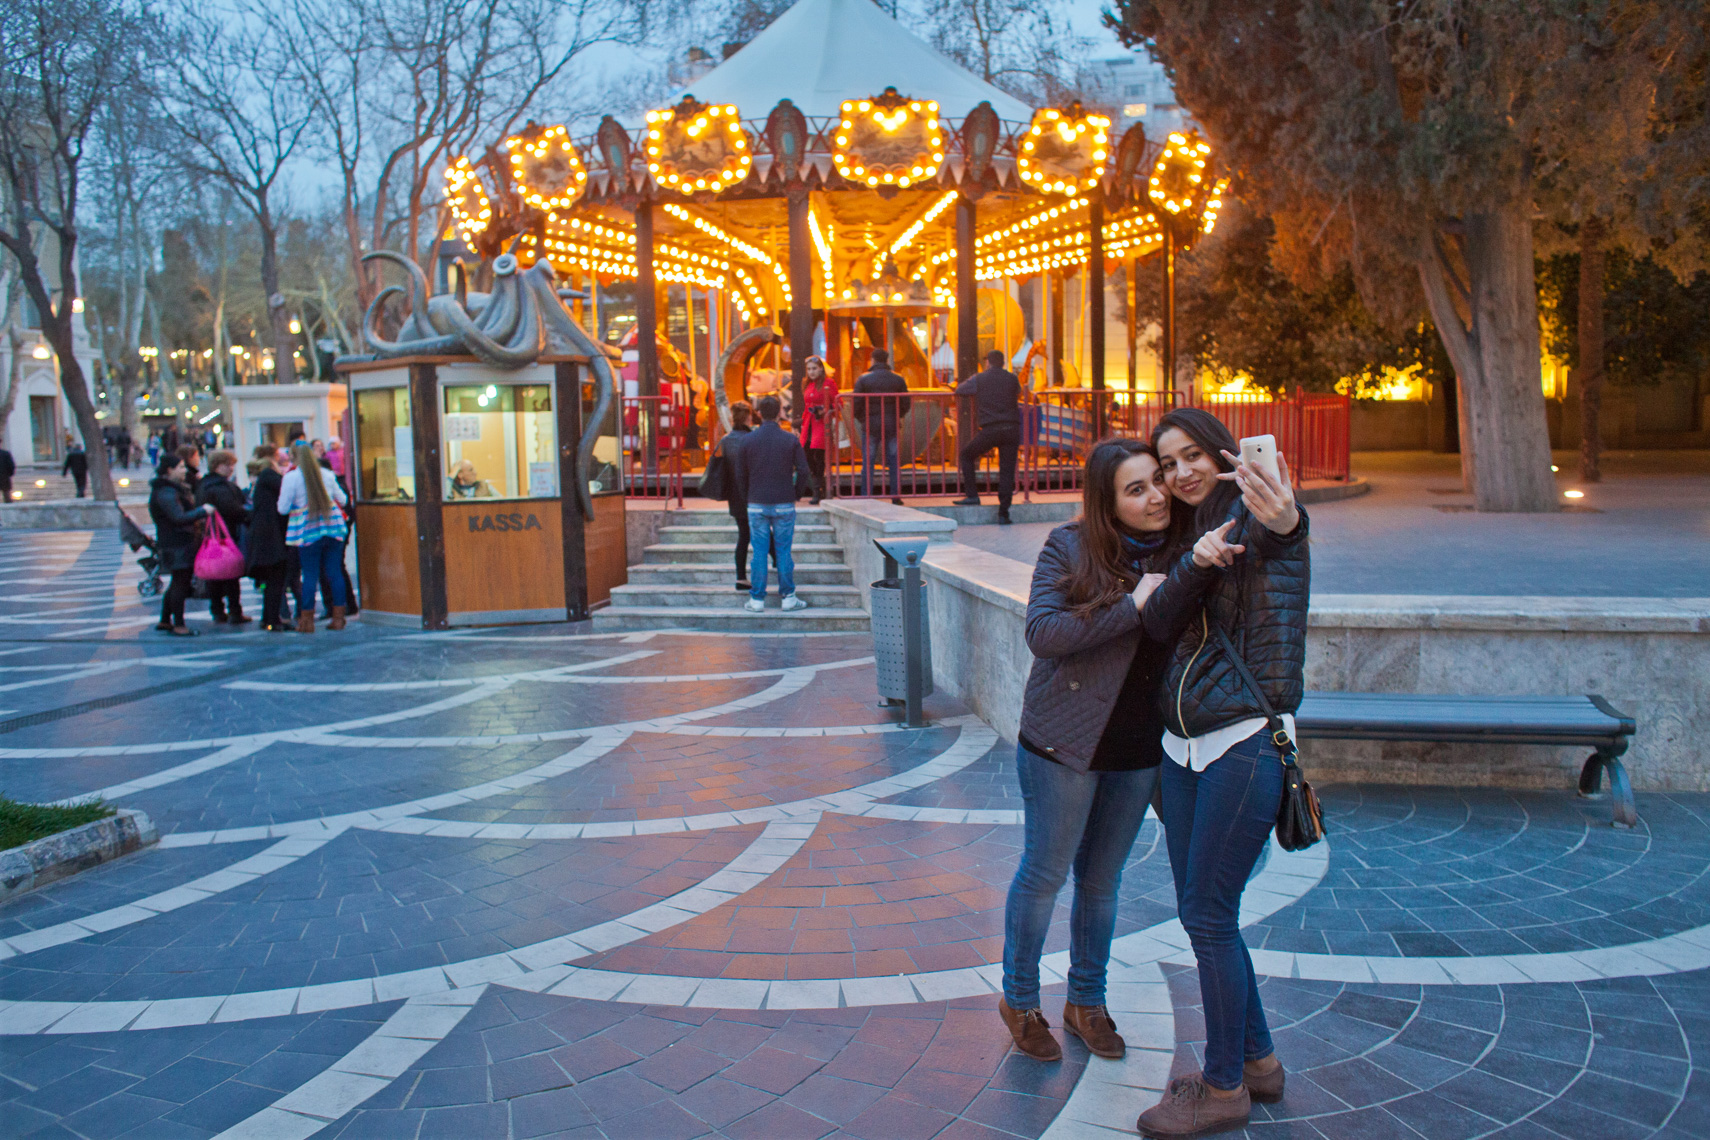 1015Muslim Girls taking selfie with carousel Baku, Azerbaijan, Nizami street %22Torgovaya%22